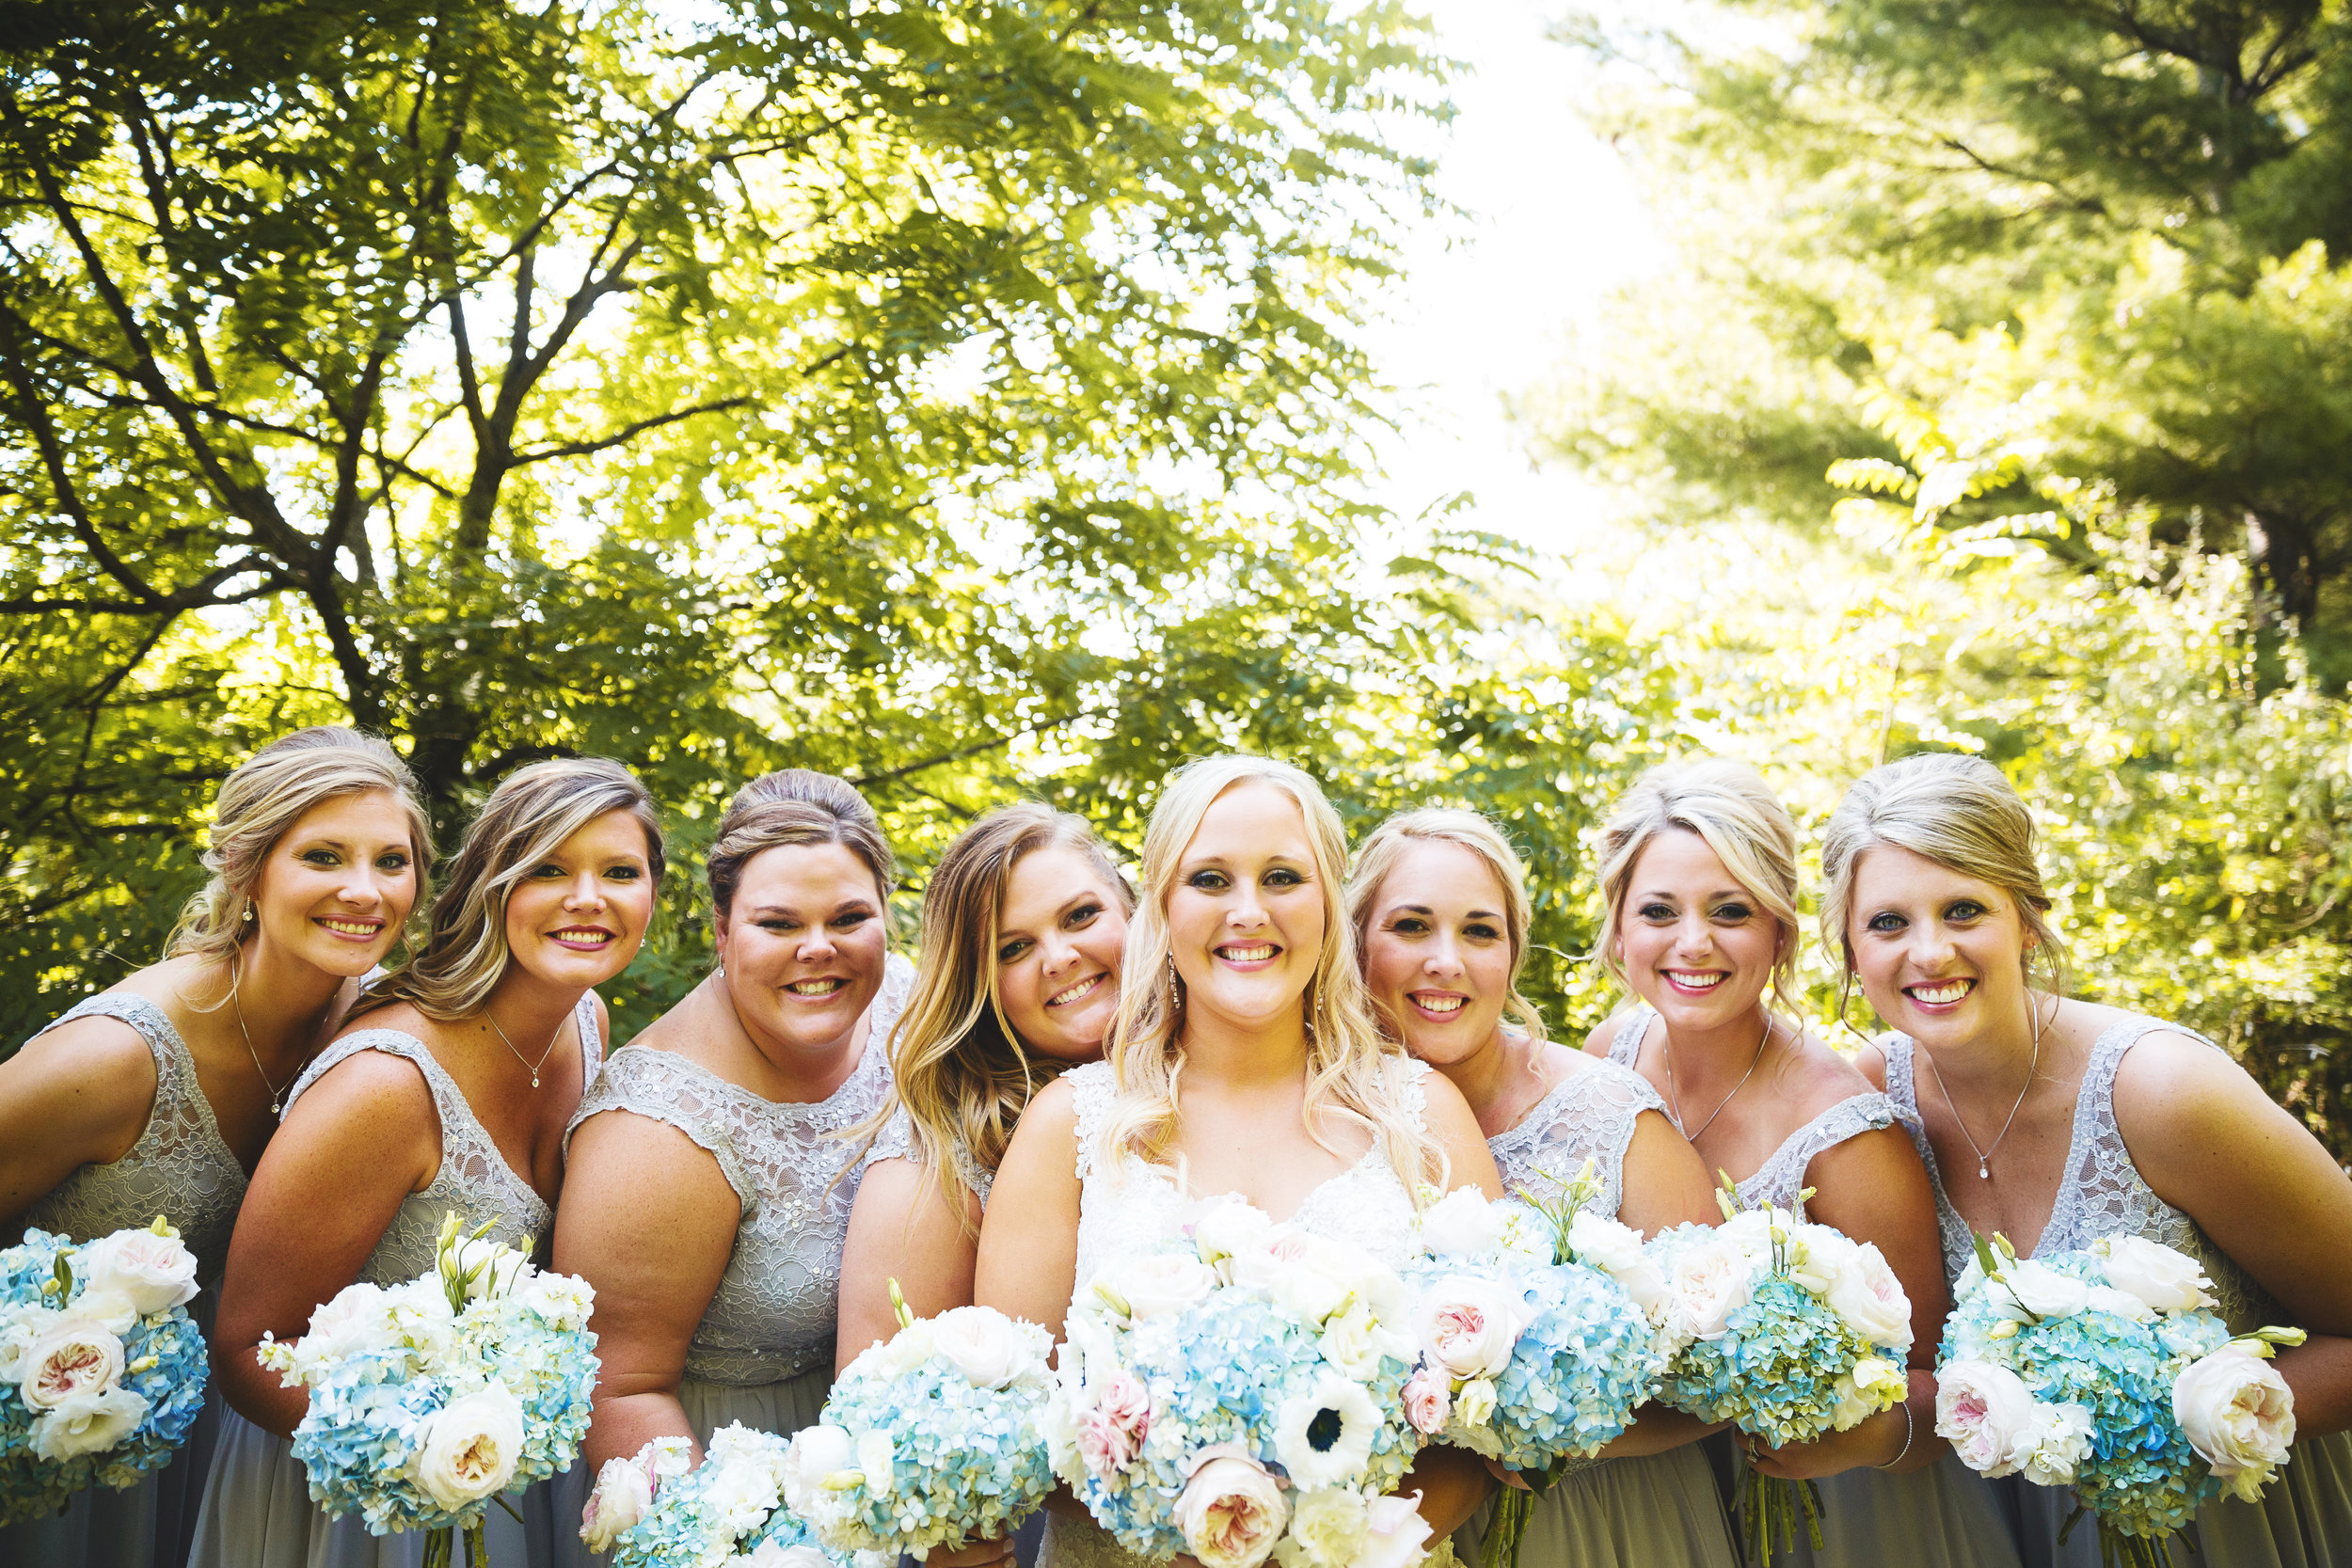 Jackie chose blue hydrangea, blush garden roses, panda anemone, white lisianthus and stock with no greenery for both her bridal bouquet and the bridesmaids.